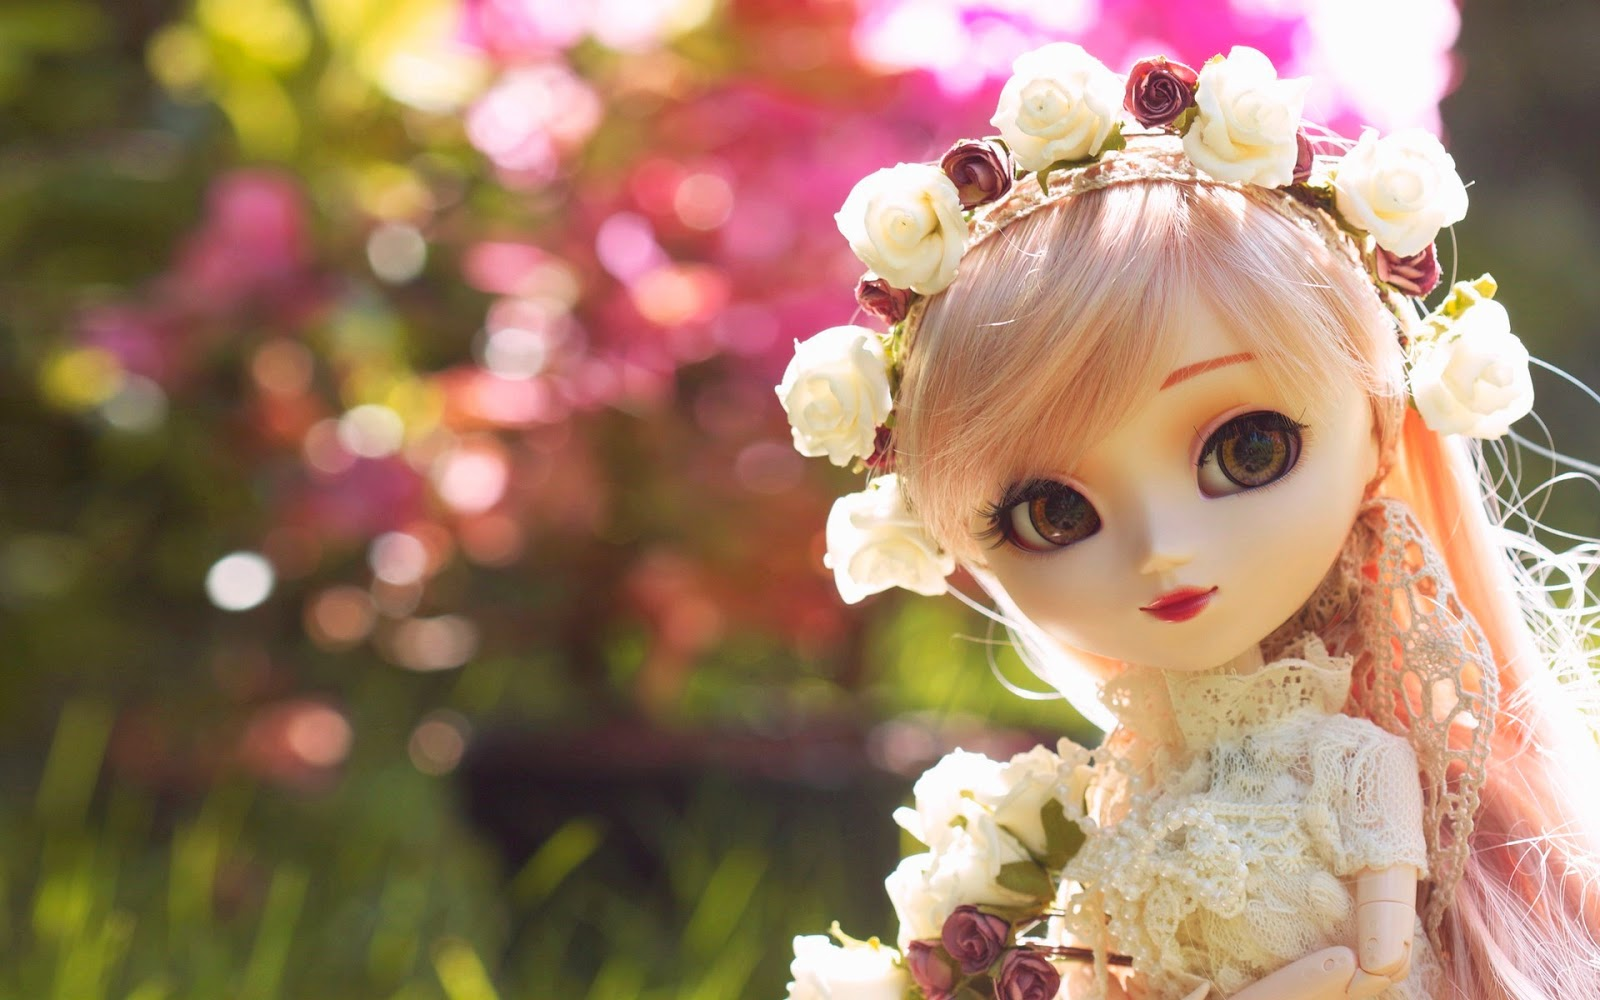 Cute dolls wallpapers for girls cute dolls wallpapers - Nice doll wallpaper ...